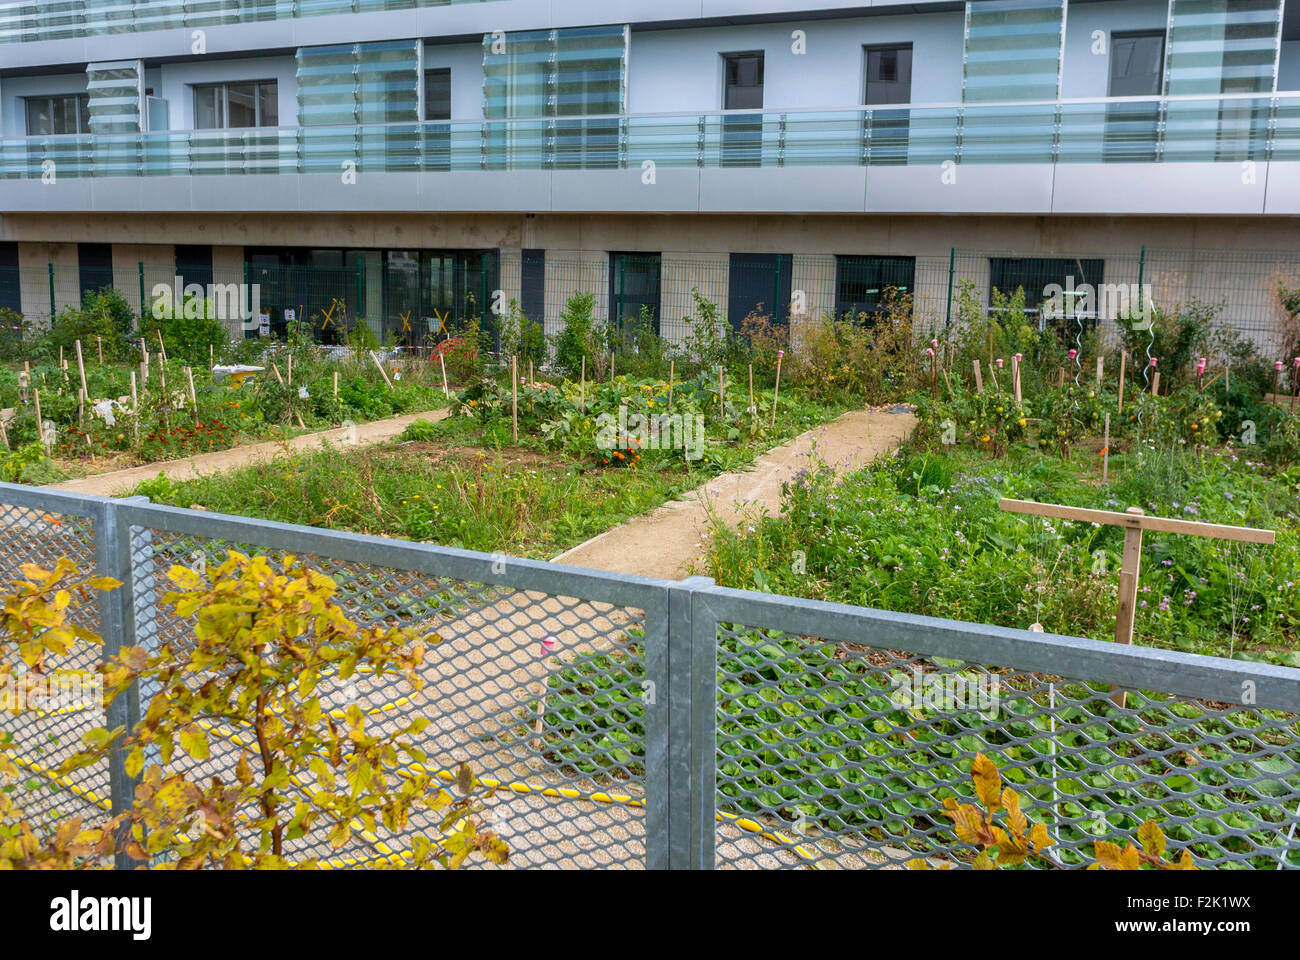 Modern Architecture France paris, france, community vegetable garden in new modern